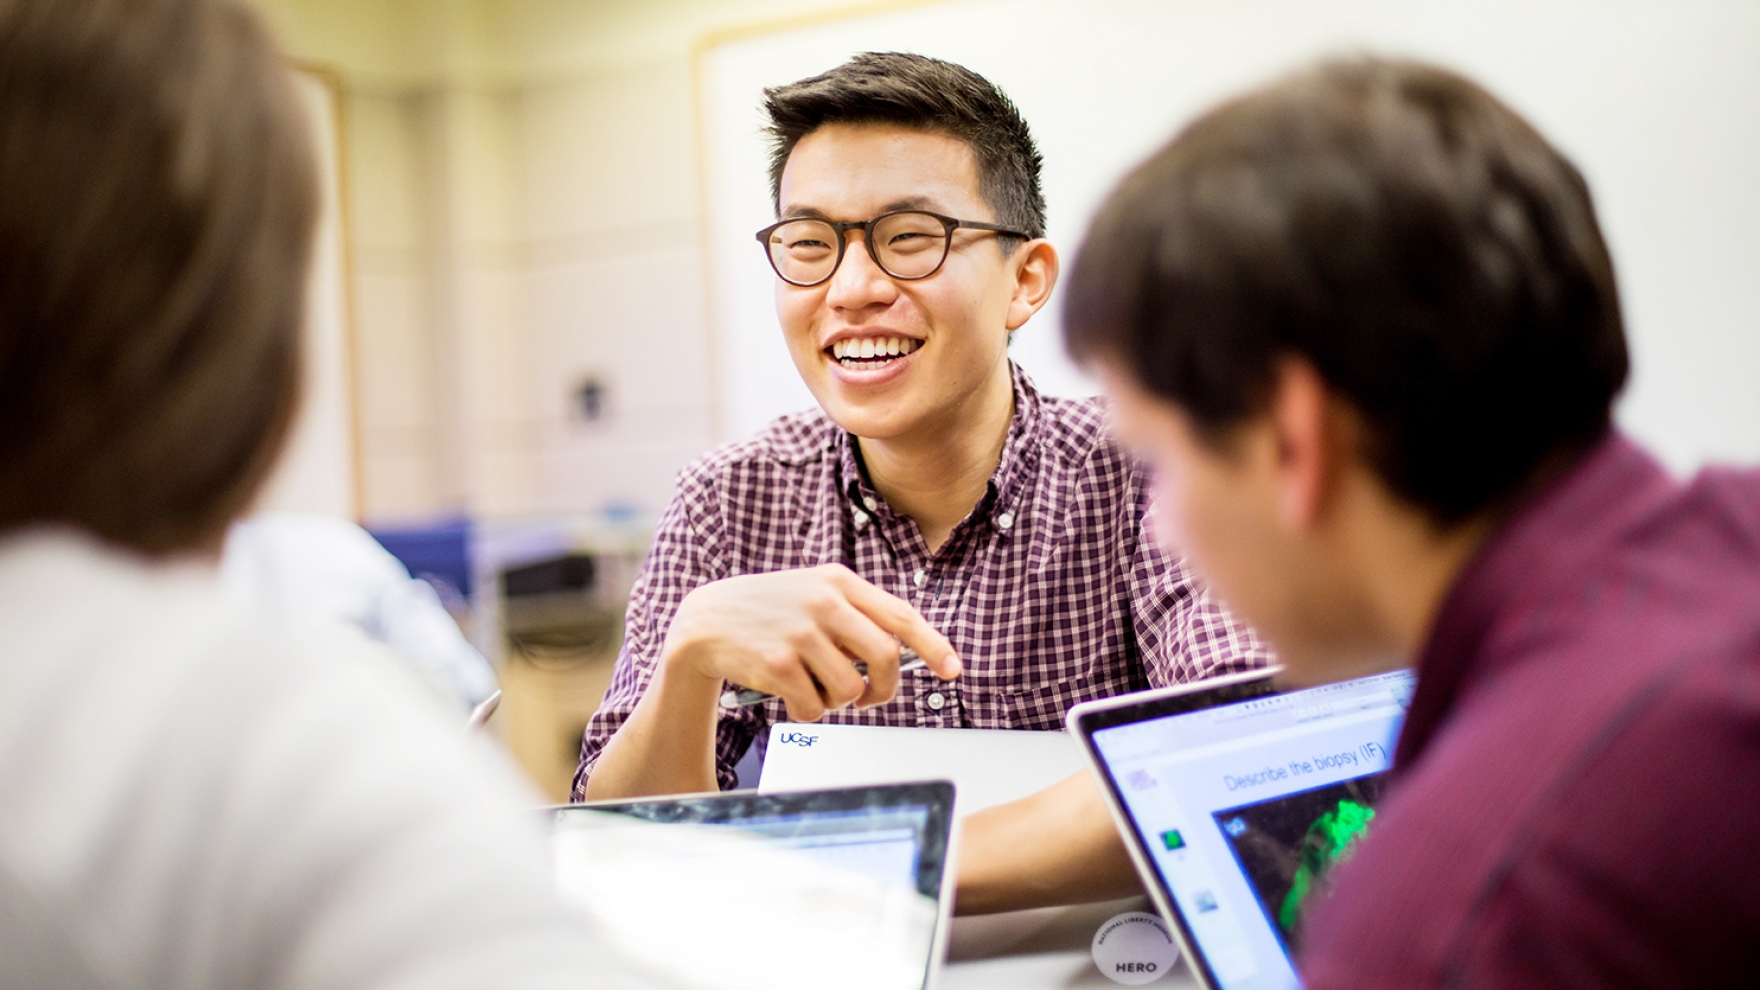 Nathan Kim studies with fellow students at UCSF's library